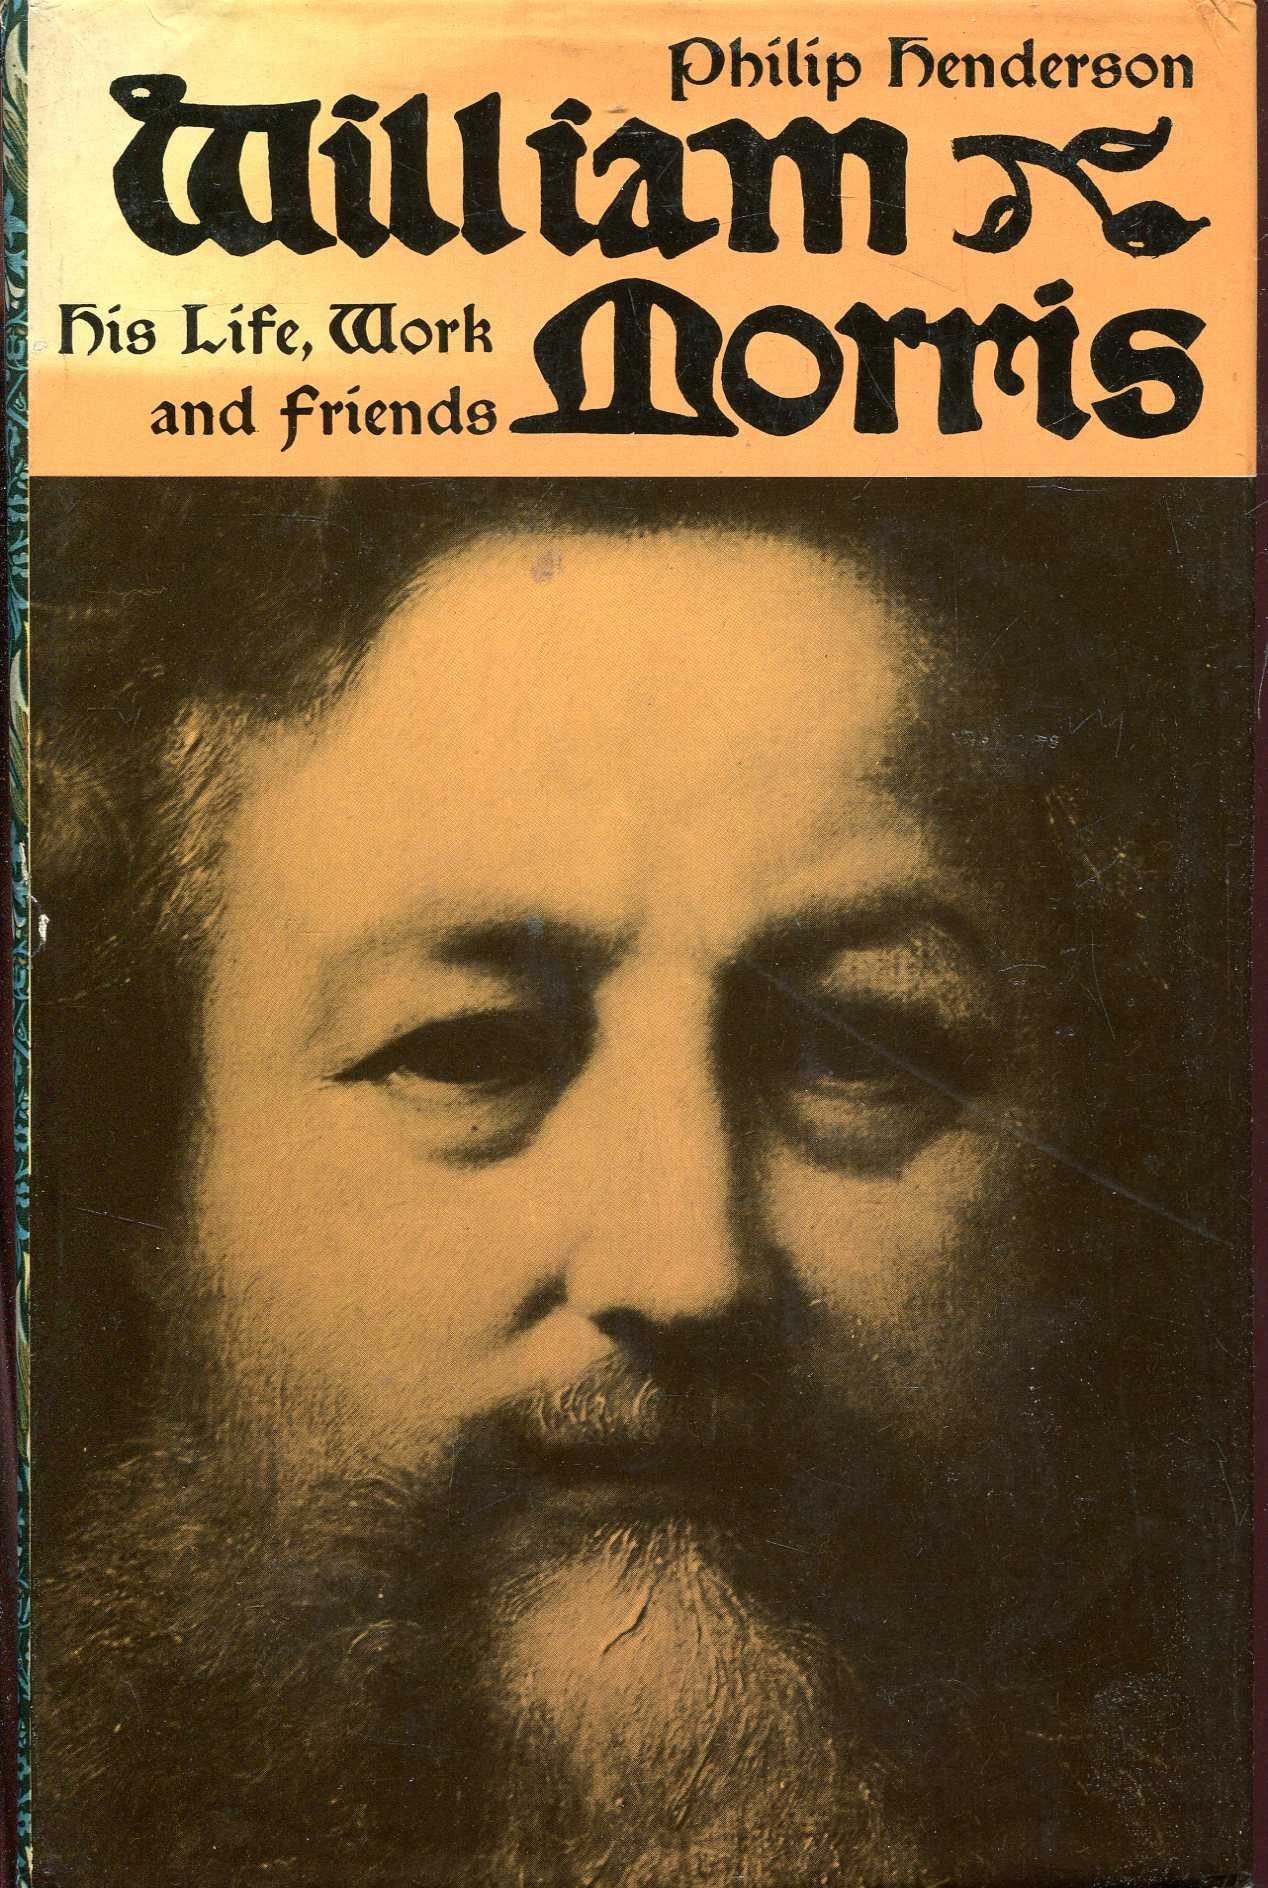 Image for William Morris, his life, work and friends